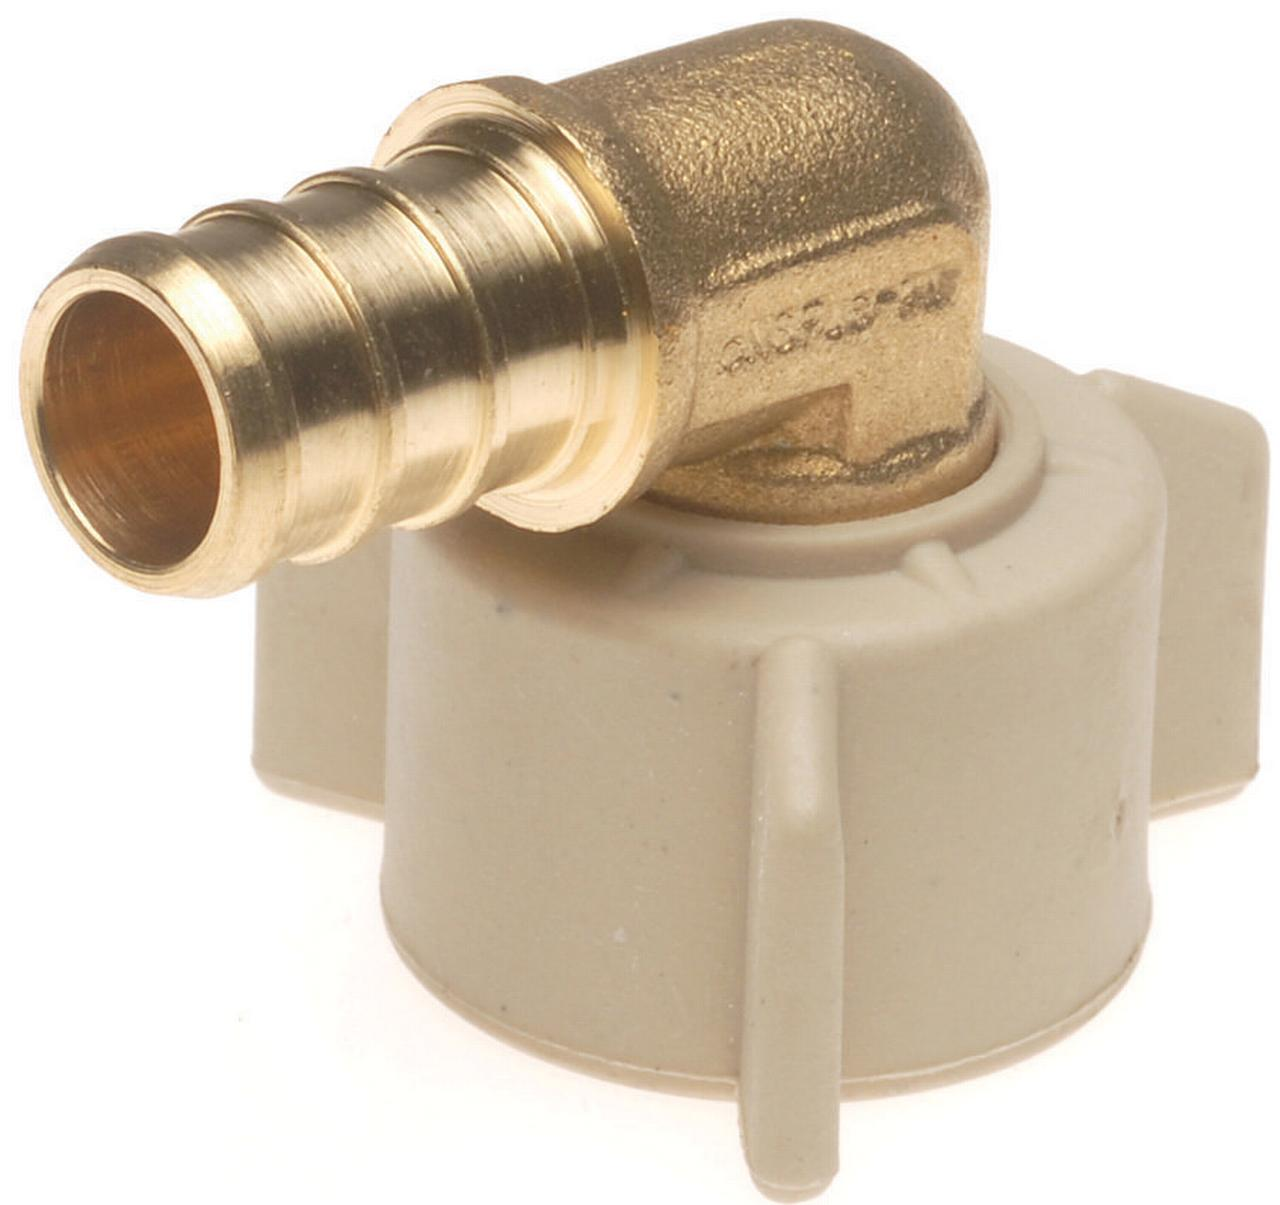 Conbraco CPXFAE1212 Swivel Pipe Elbow, 90 deg, 1/2 in, Pex, Brass